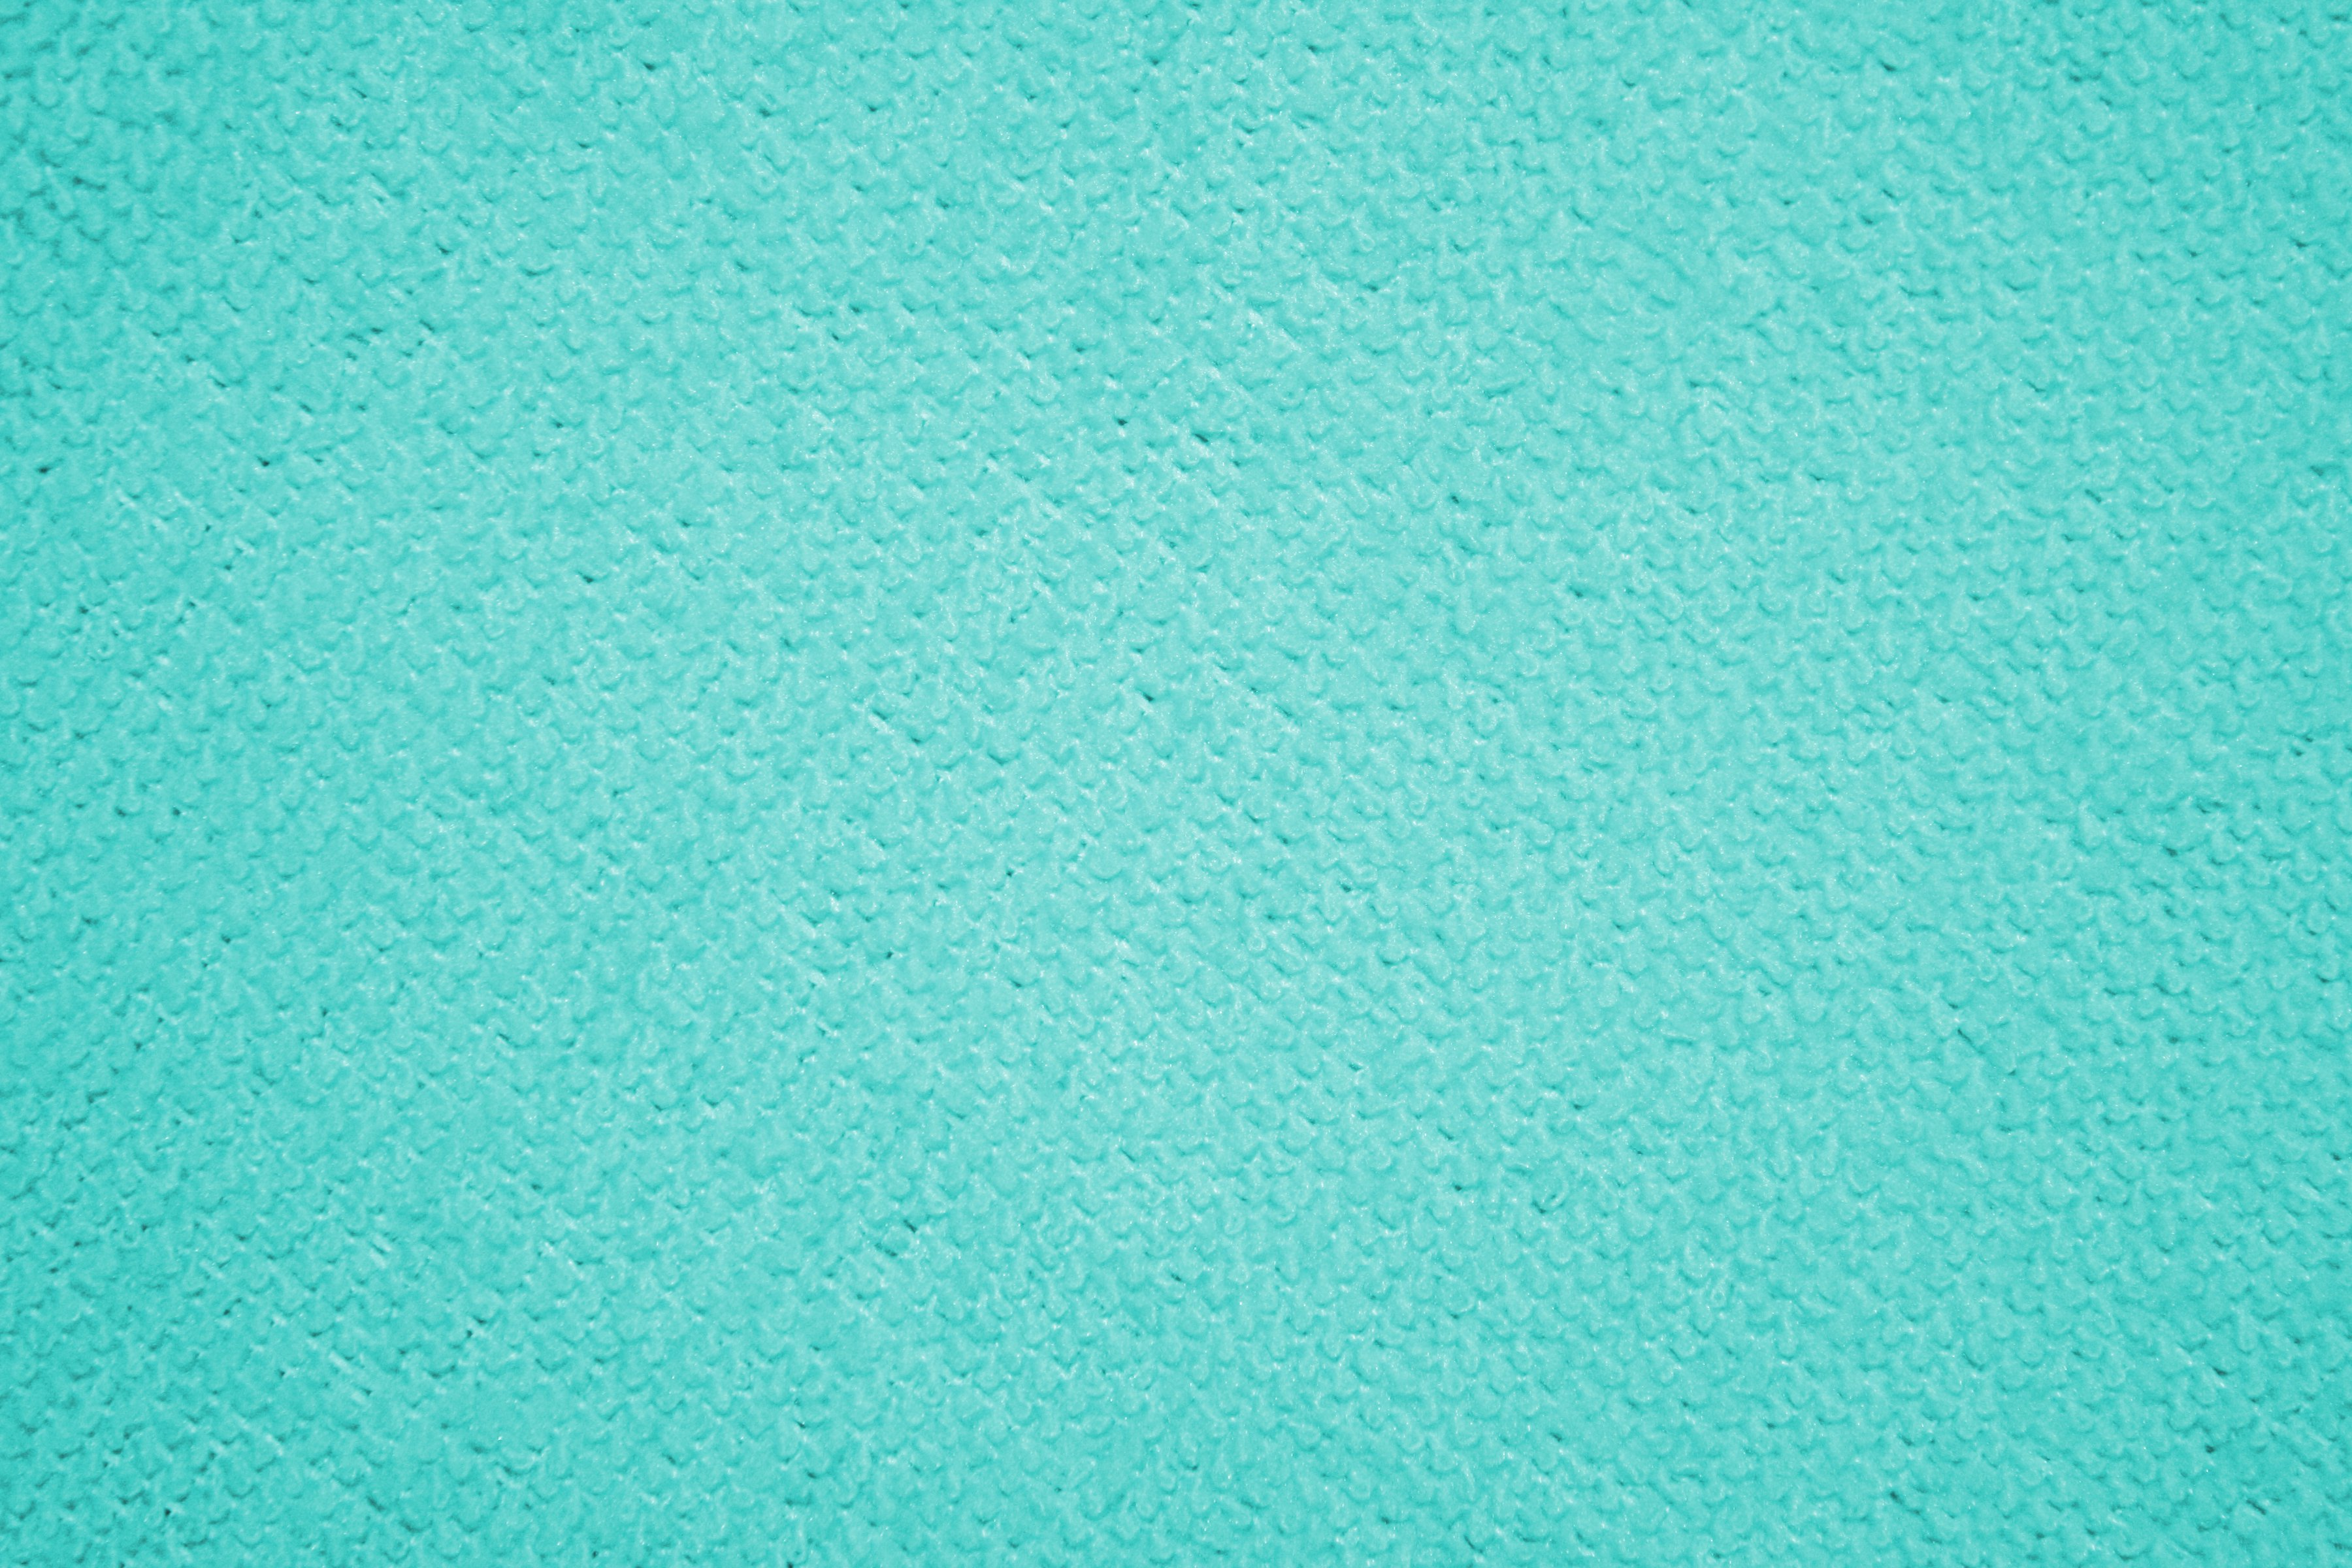 The Texture Of Teal And Turquoise: Teal Microfiber Cloth Fabric Texture Picture